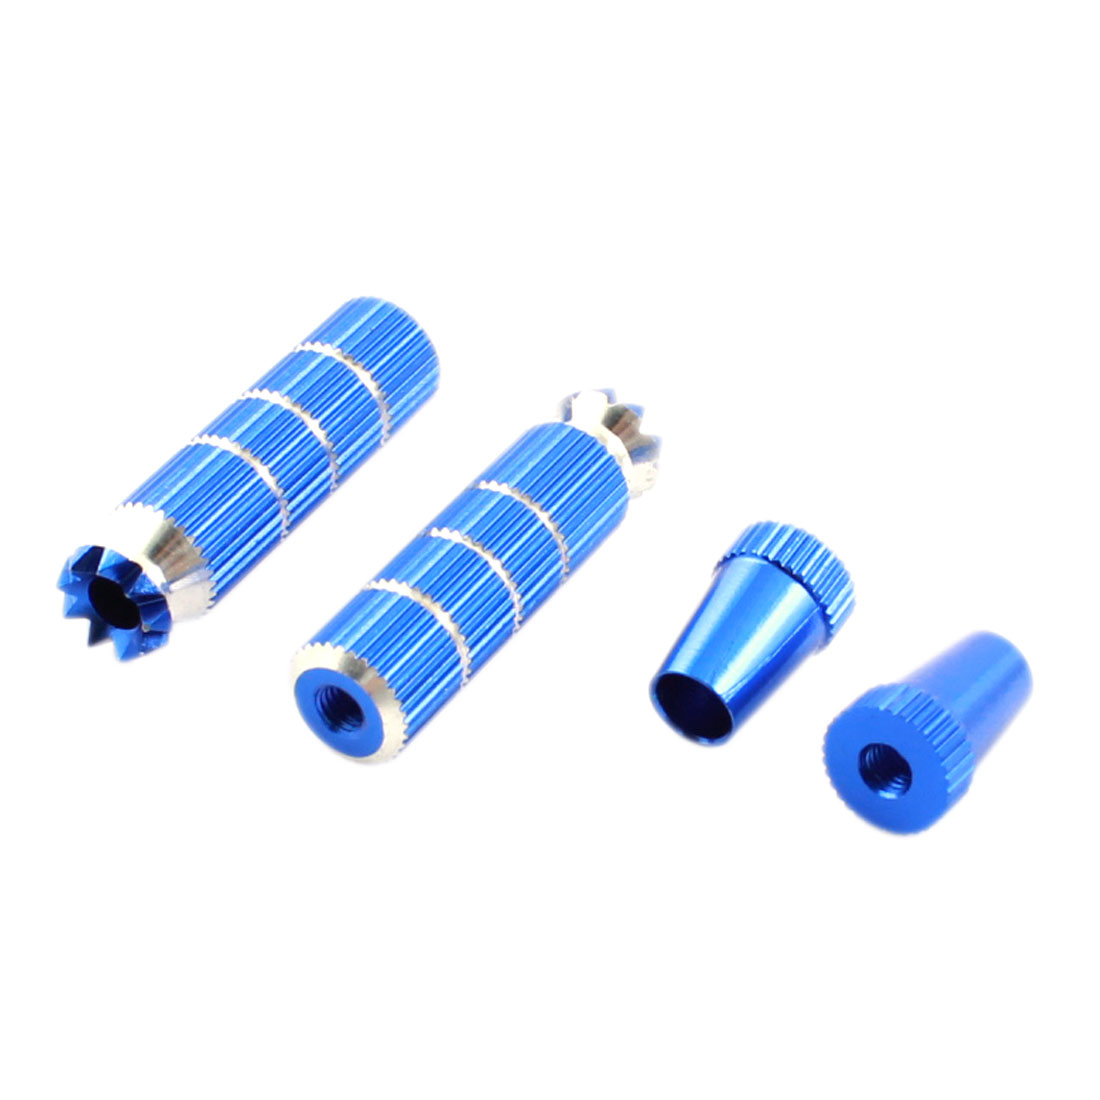 Pair Blue Aluminum Spektrum Gimbal Stick Ends 40mm for RC Model